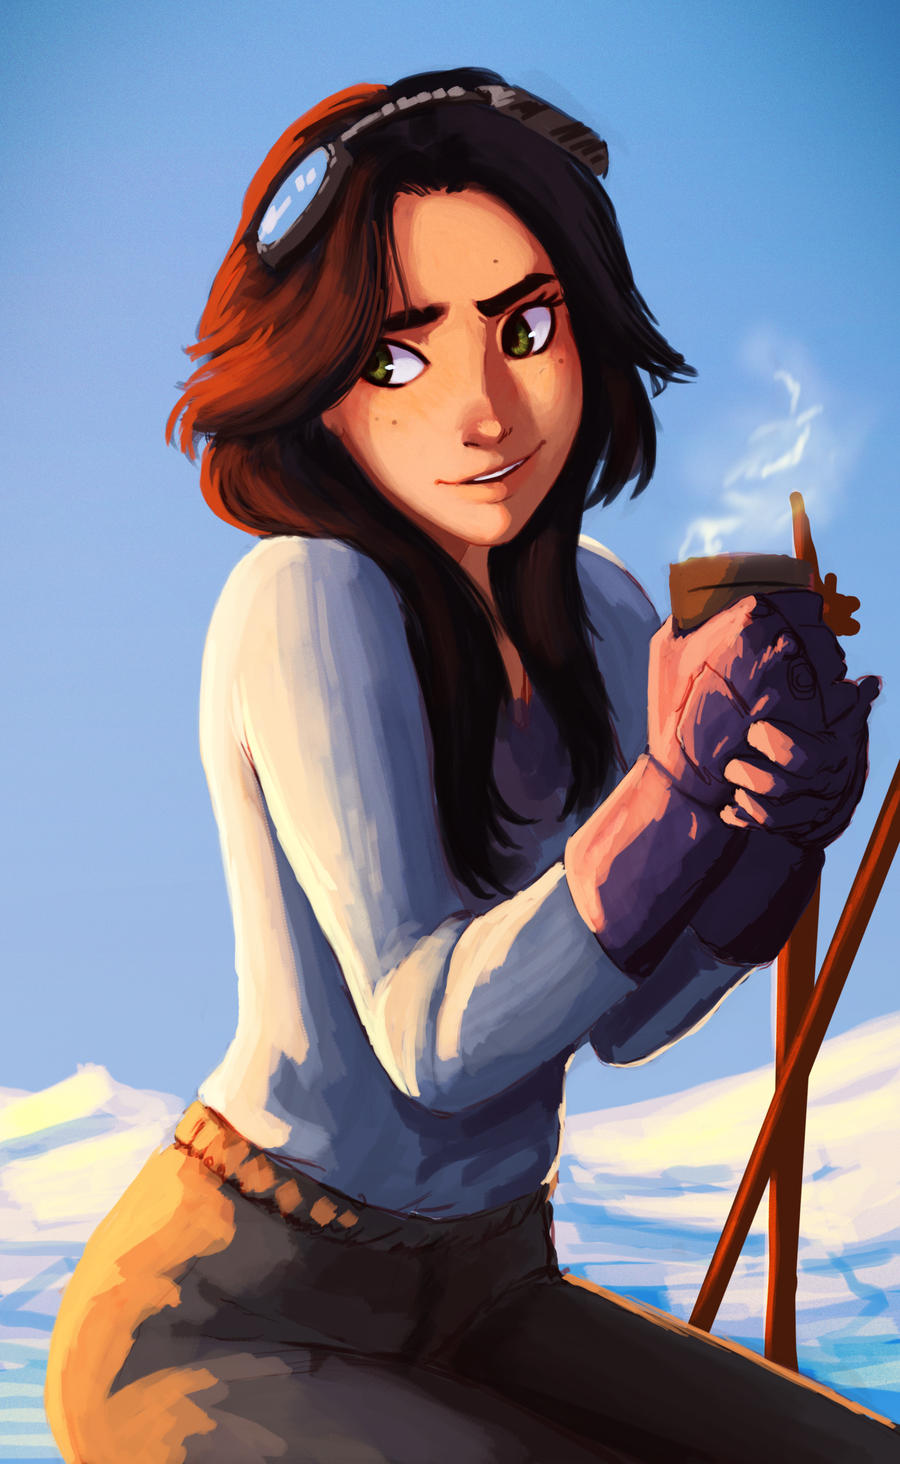 It is a picture of Irresistible Brown Haired Girl Drawing